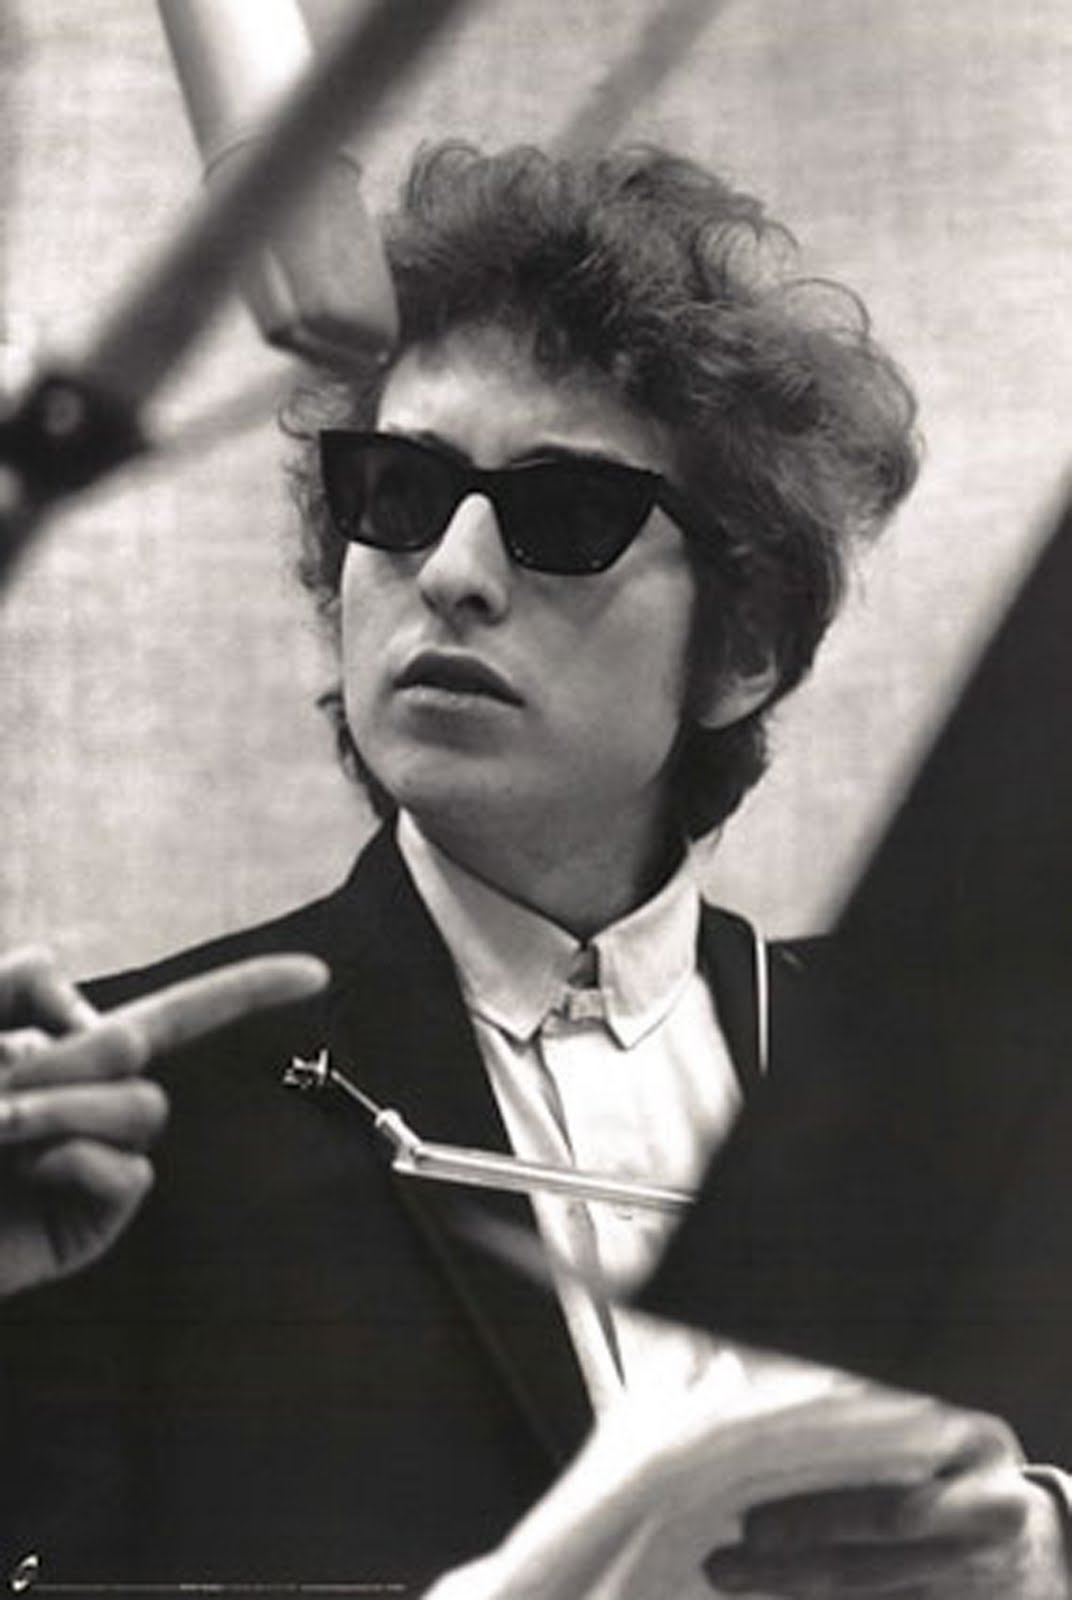 Sunglasses bobdylan for The dylan